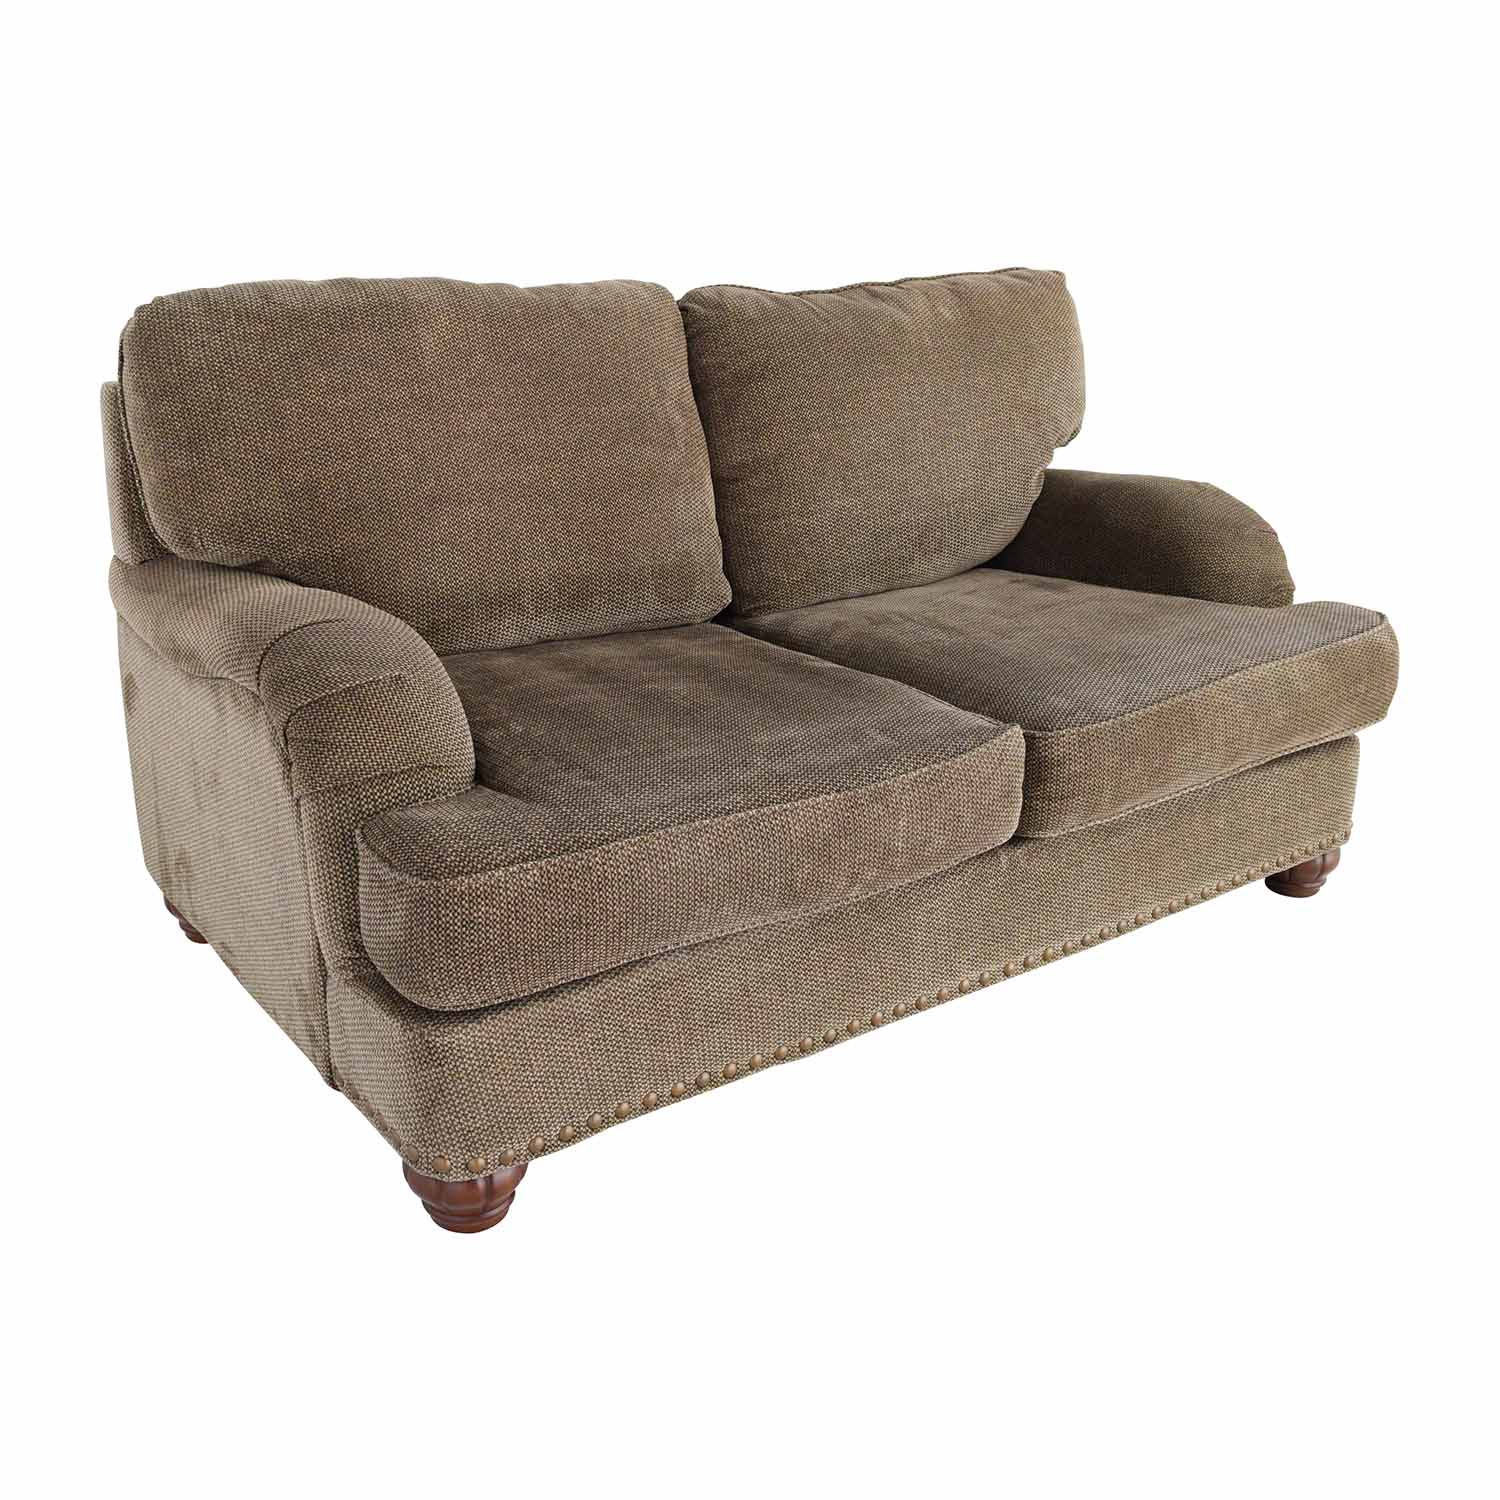 Loveseat Sofa Bed Ashley Furniture: Ashley Furniture Ashley Furniture Barclay Place